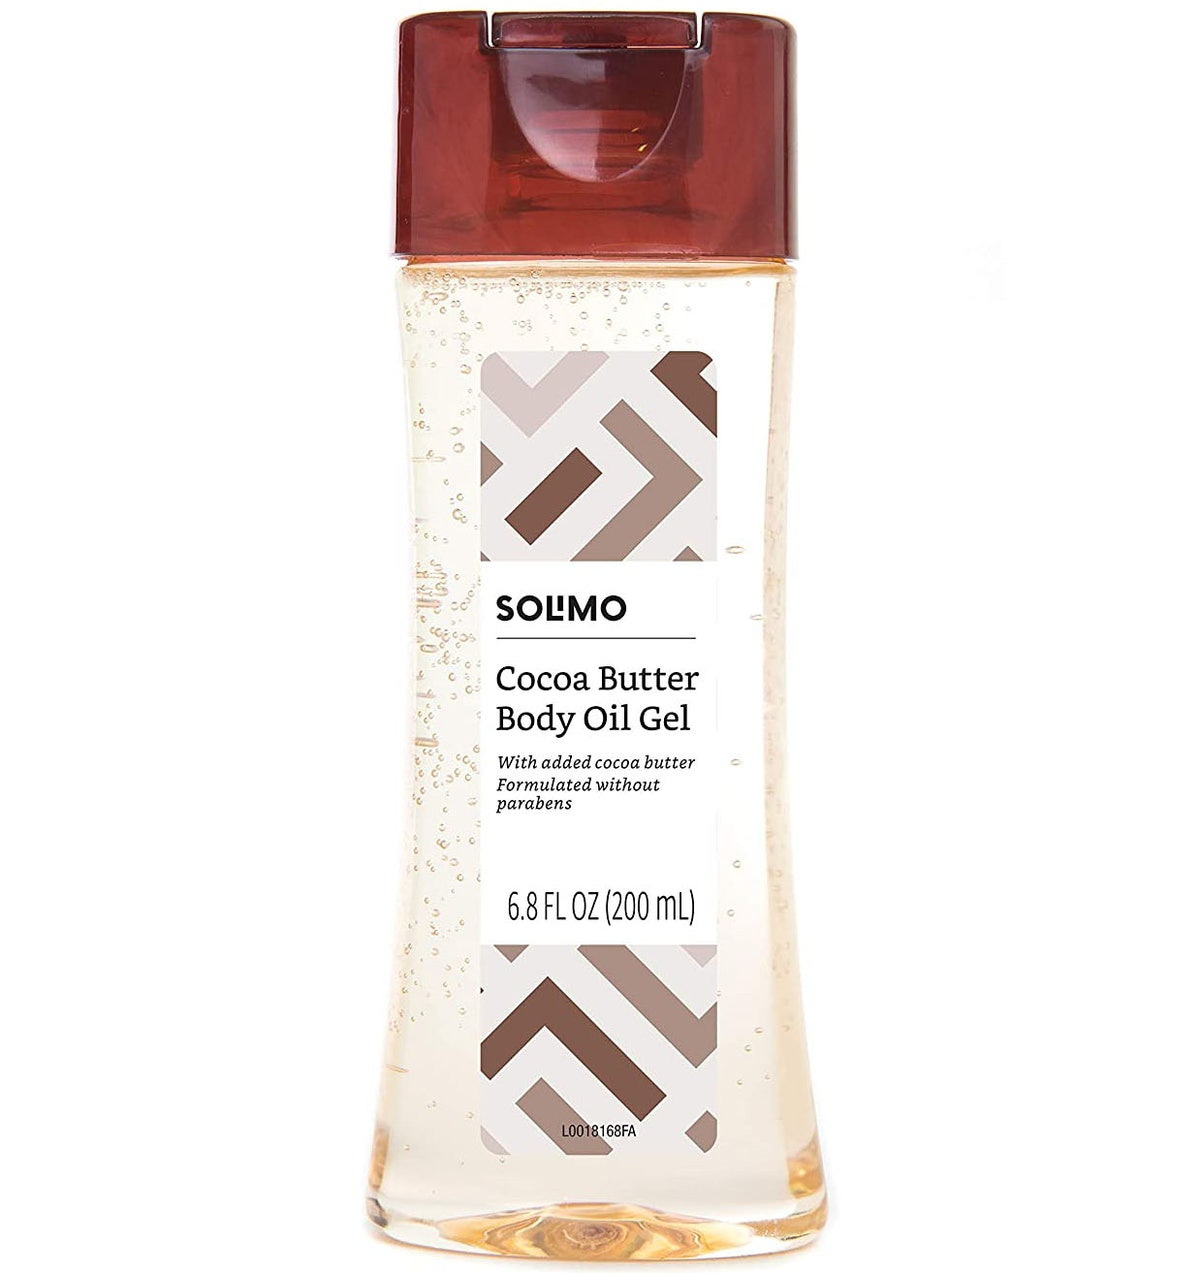 Solimo Cocoa Butter Body Oil Gel